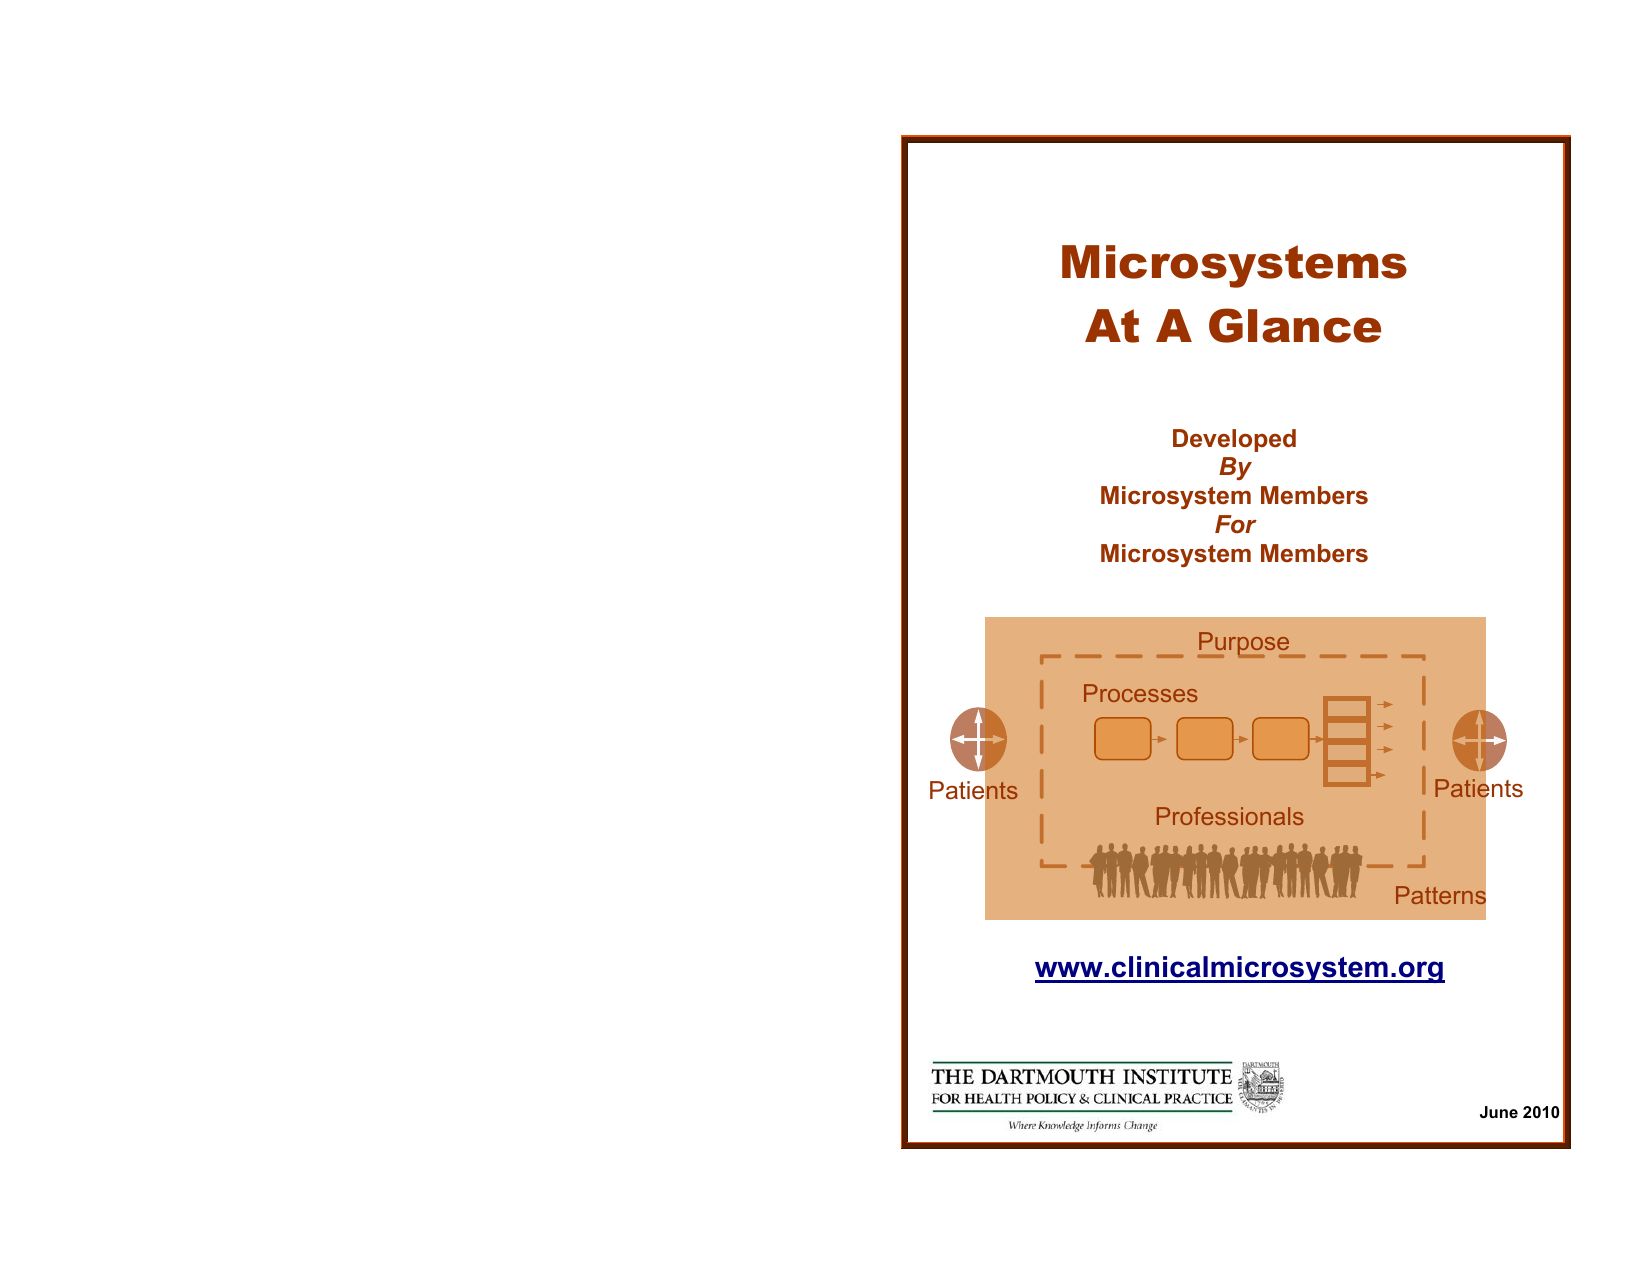 Microsystems at a glance the dartmouth institute microsystem pooptronica Image collections